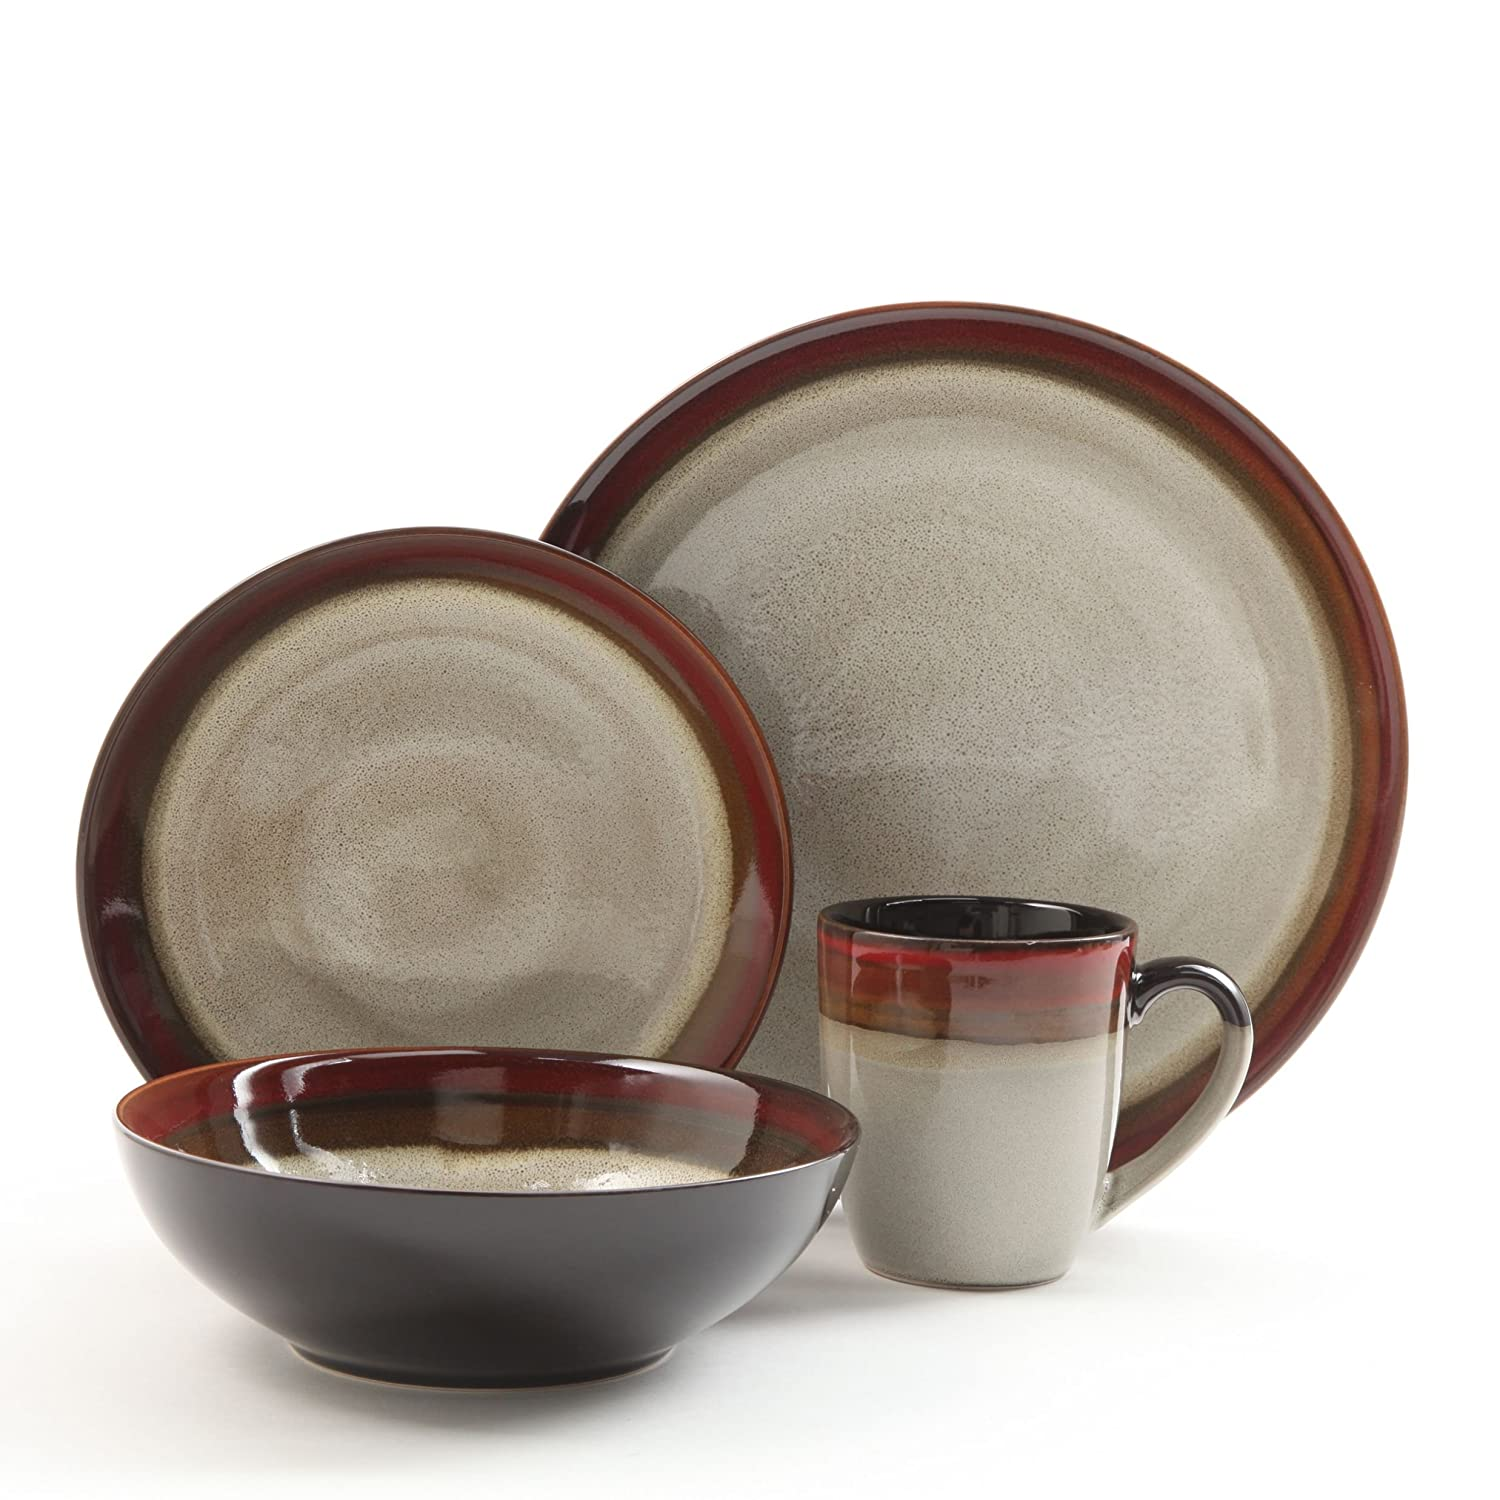 Amazon.com | Gibson Couture Bands 16-Piece Dinnerware Set Red and Cream Dinnerware Sets  sc 1 st  Amazon.com & Amazon.com | Gibson Couture Bands 16-Piece Dinnerware Set Red and ...